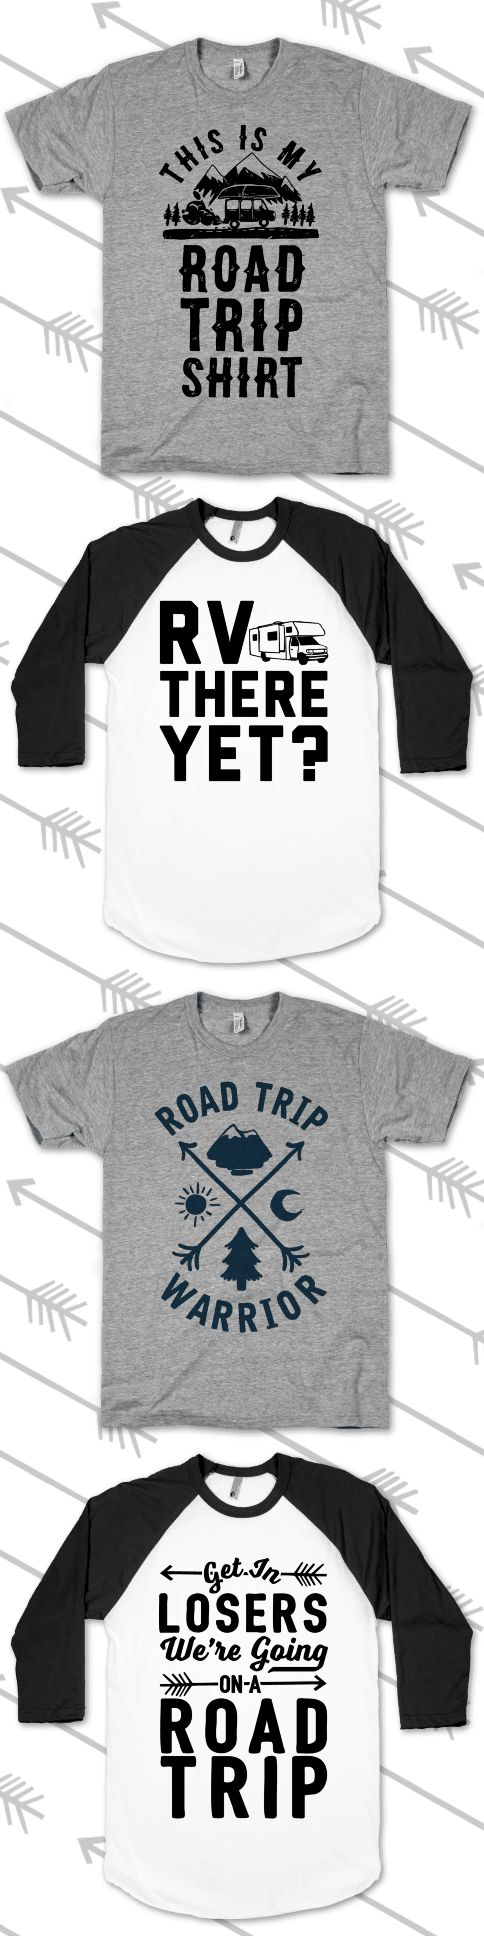 Make time for a road trip to drive off that winter wanderlust. Grab these shirts, pack the car, and head off on a long weekend trip! Get 25% off everything on our entire site through Tuesday, Feb 16. No promo code required.